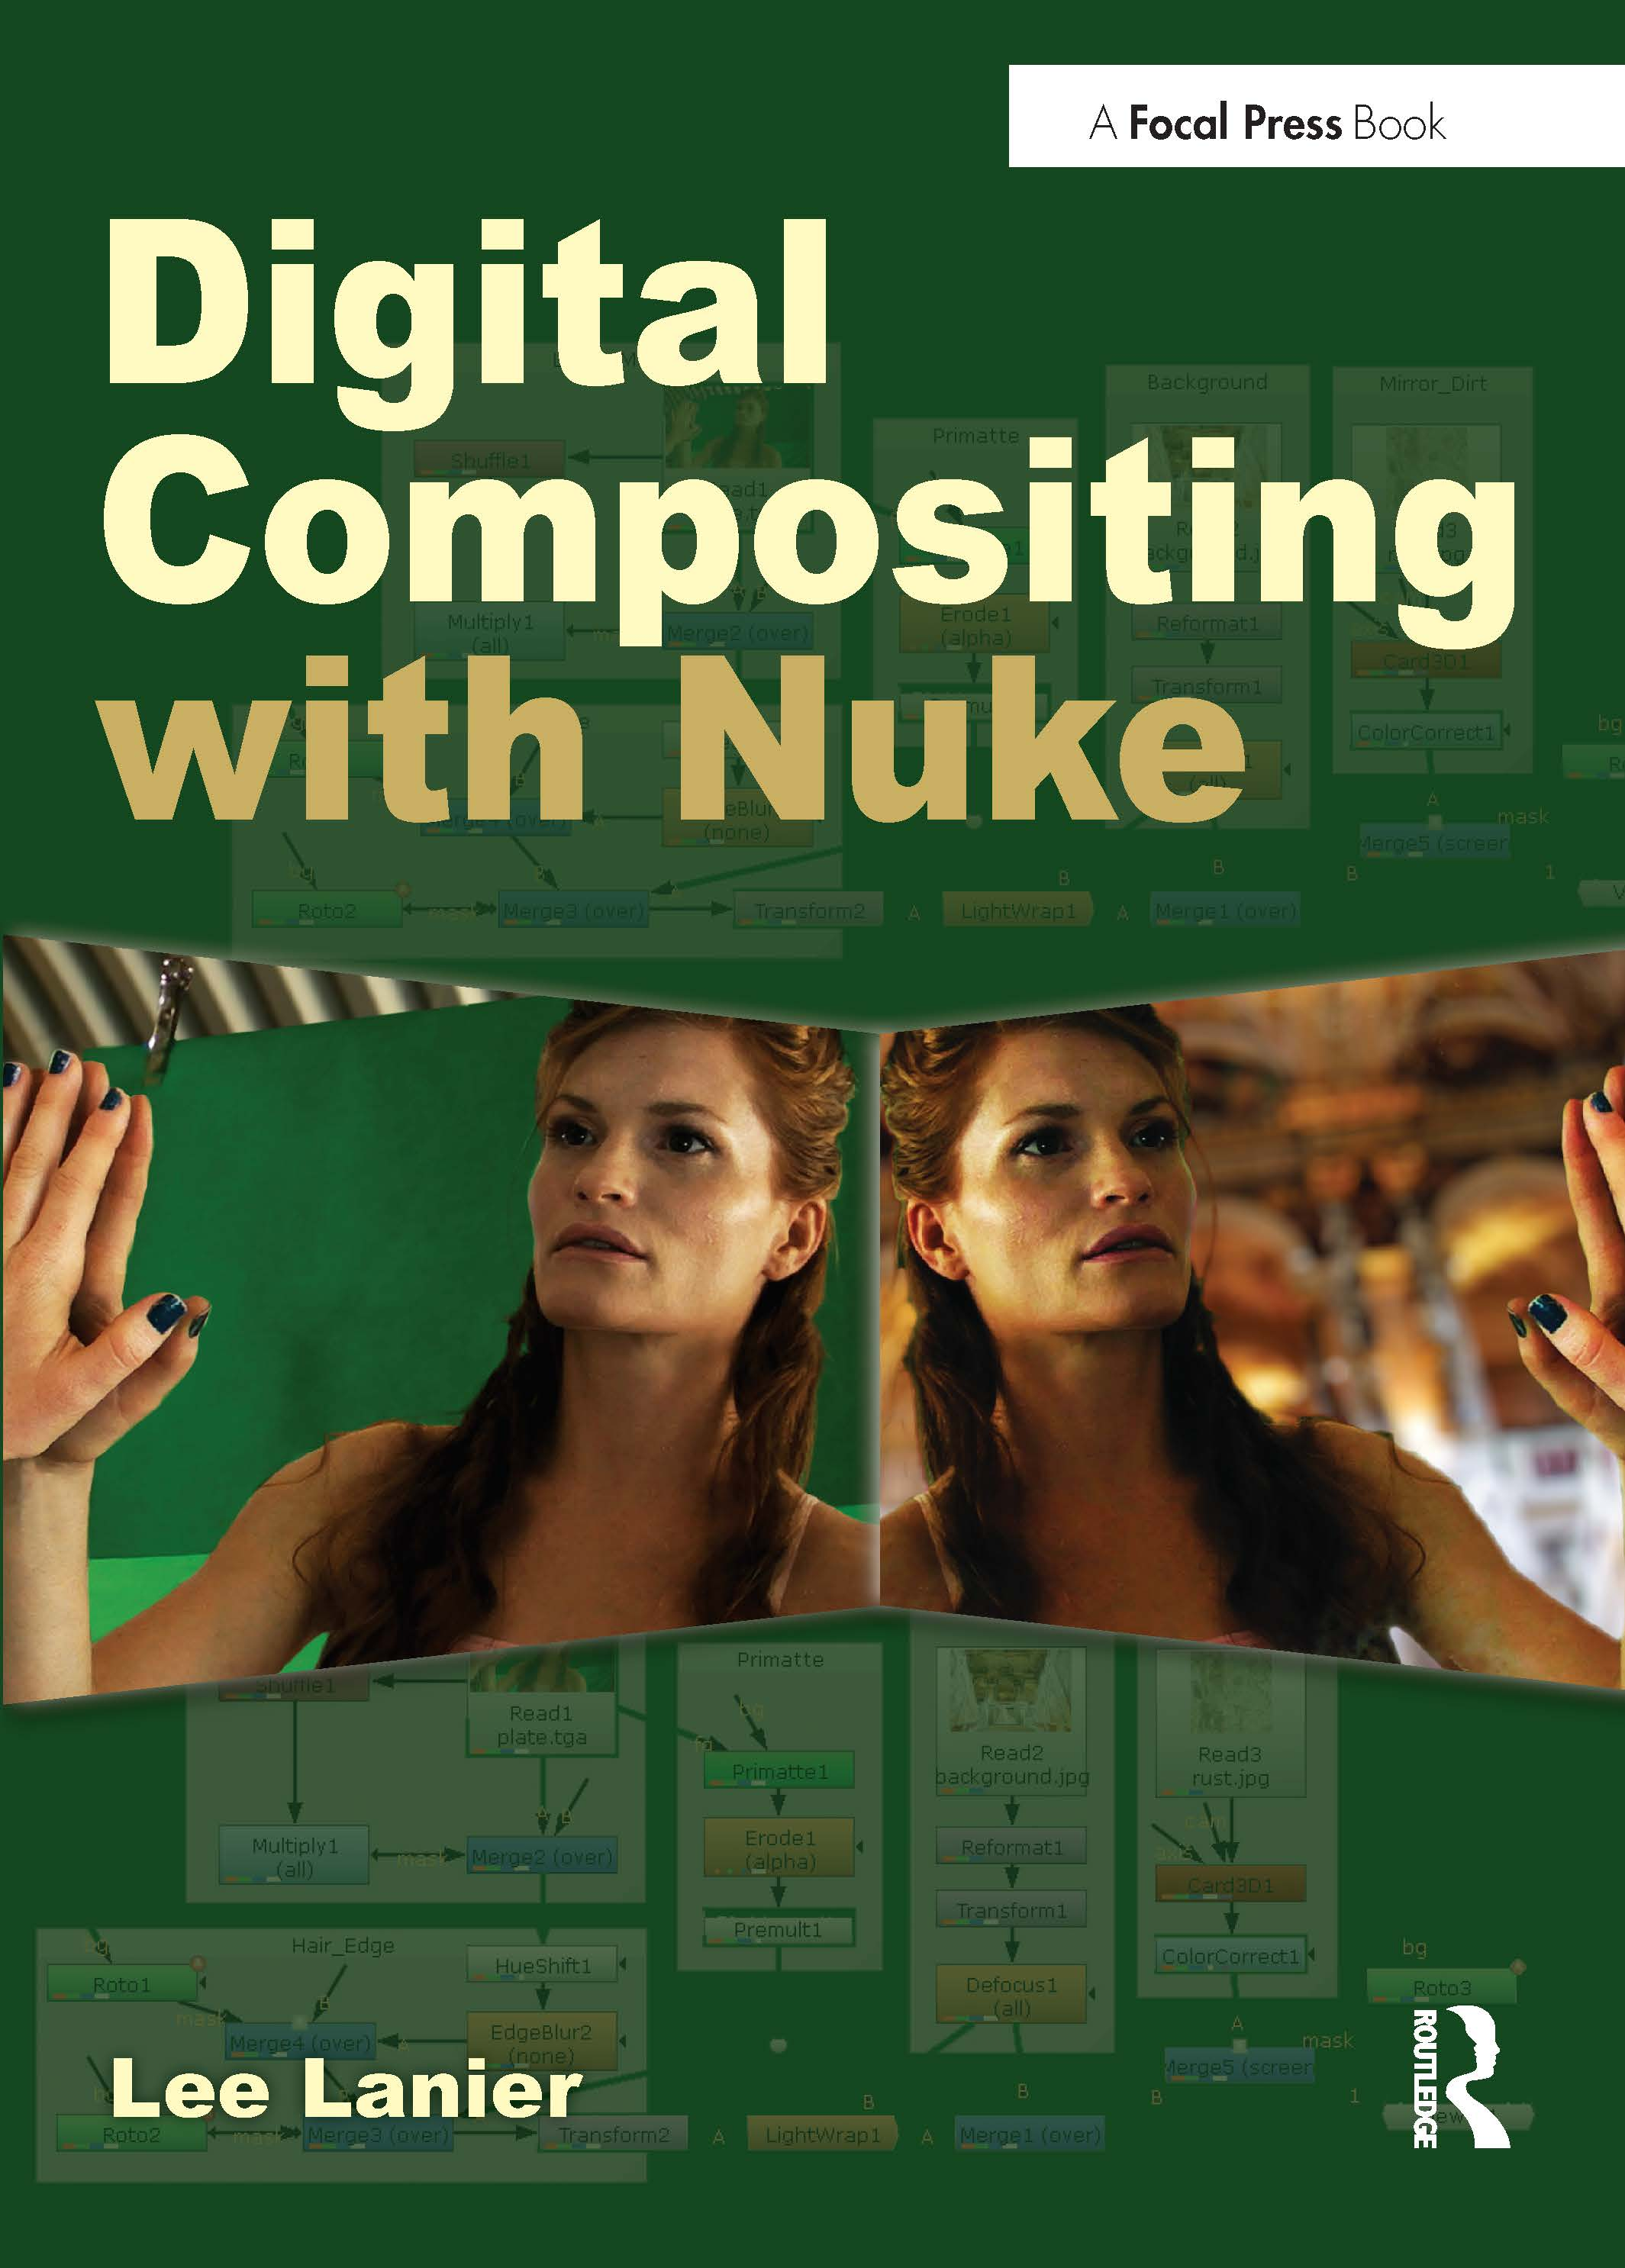 Digital Compositing with Nuke book cover